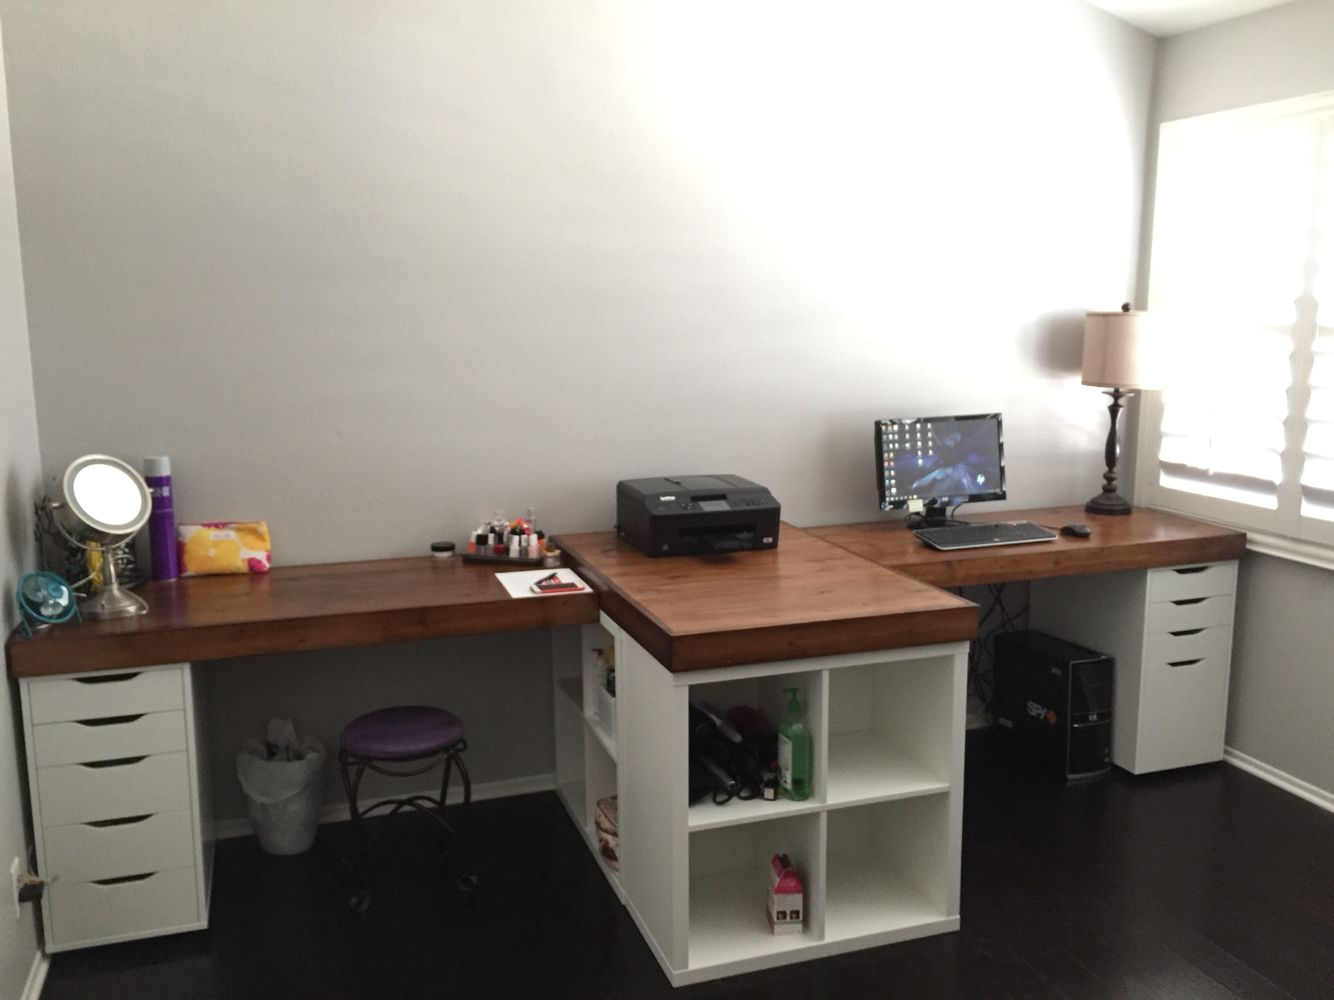 Ikea Home Office Youtube His And Hers Desk Ikea Hack Ikea Base Cabinets With